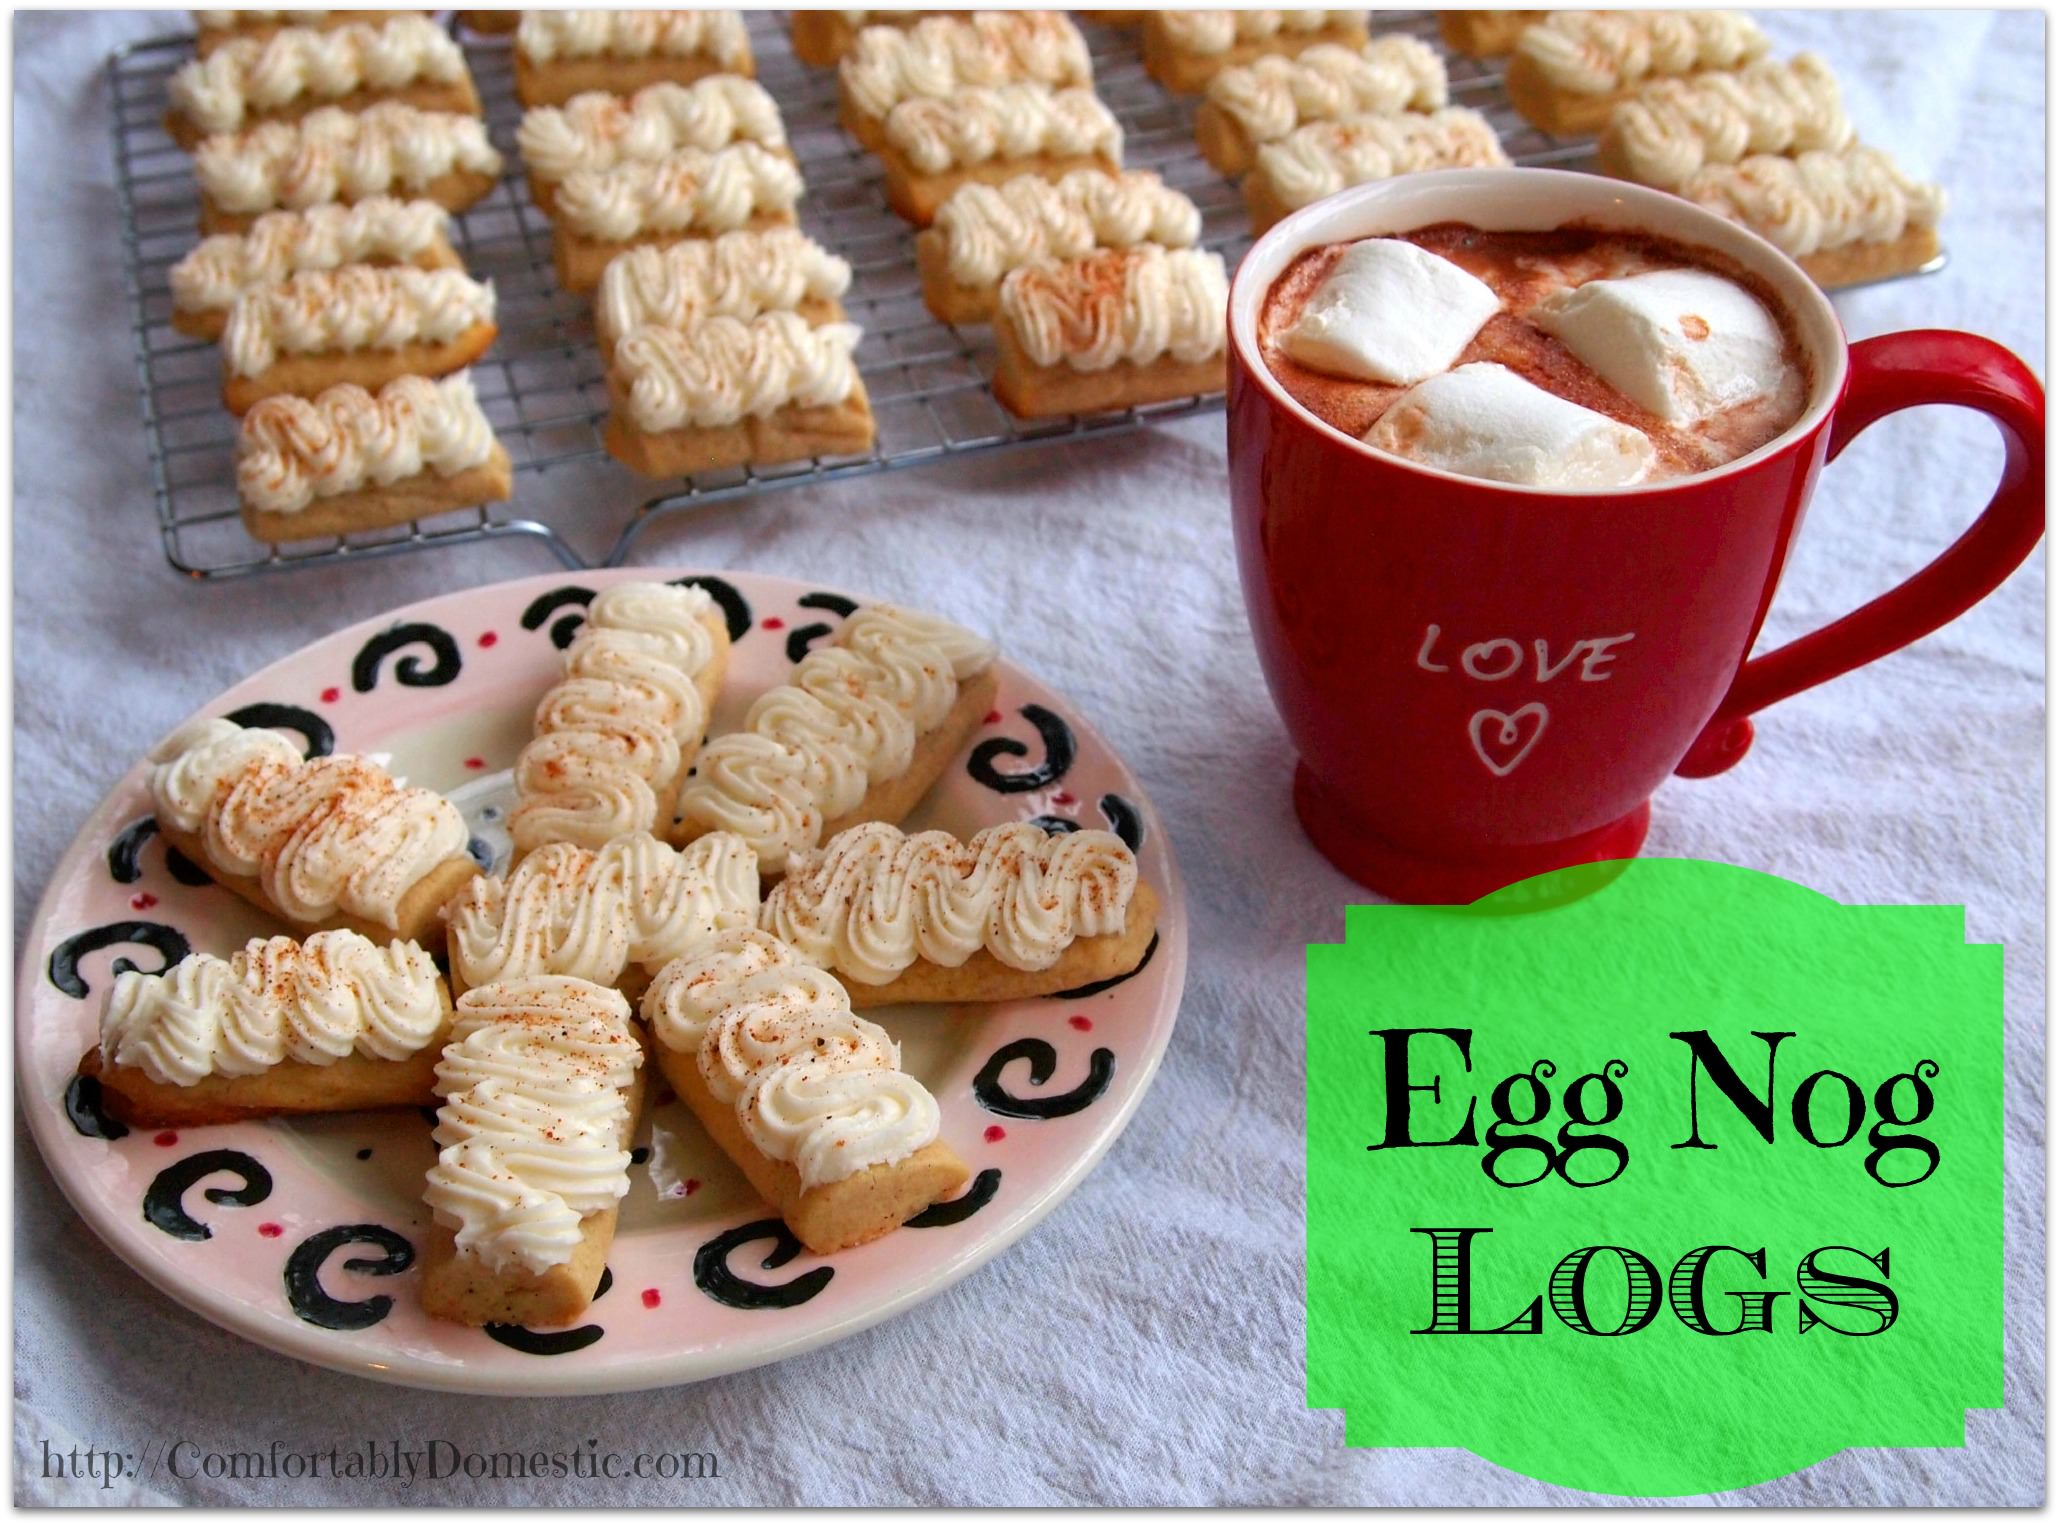 Egg Nog Logs by Comfortably Domestic